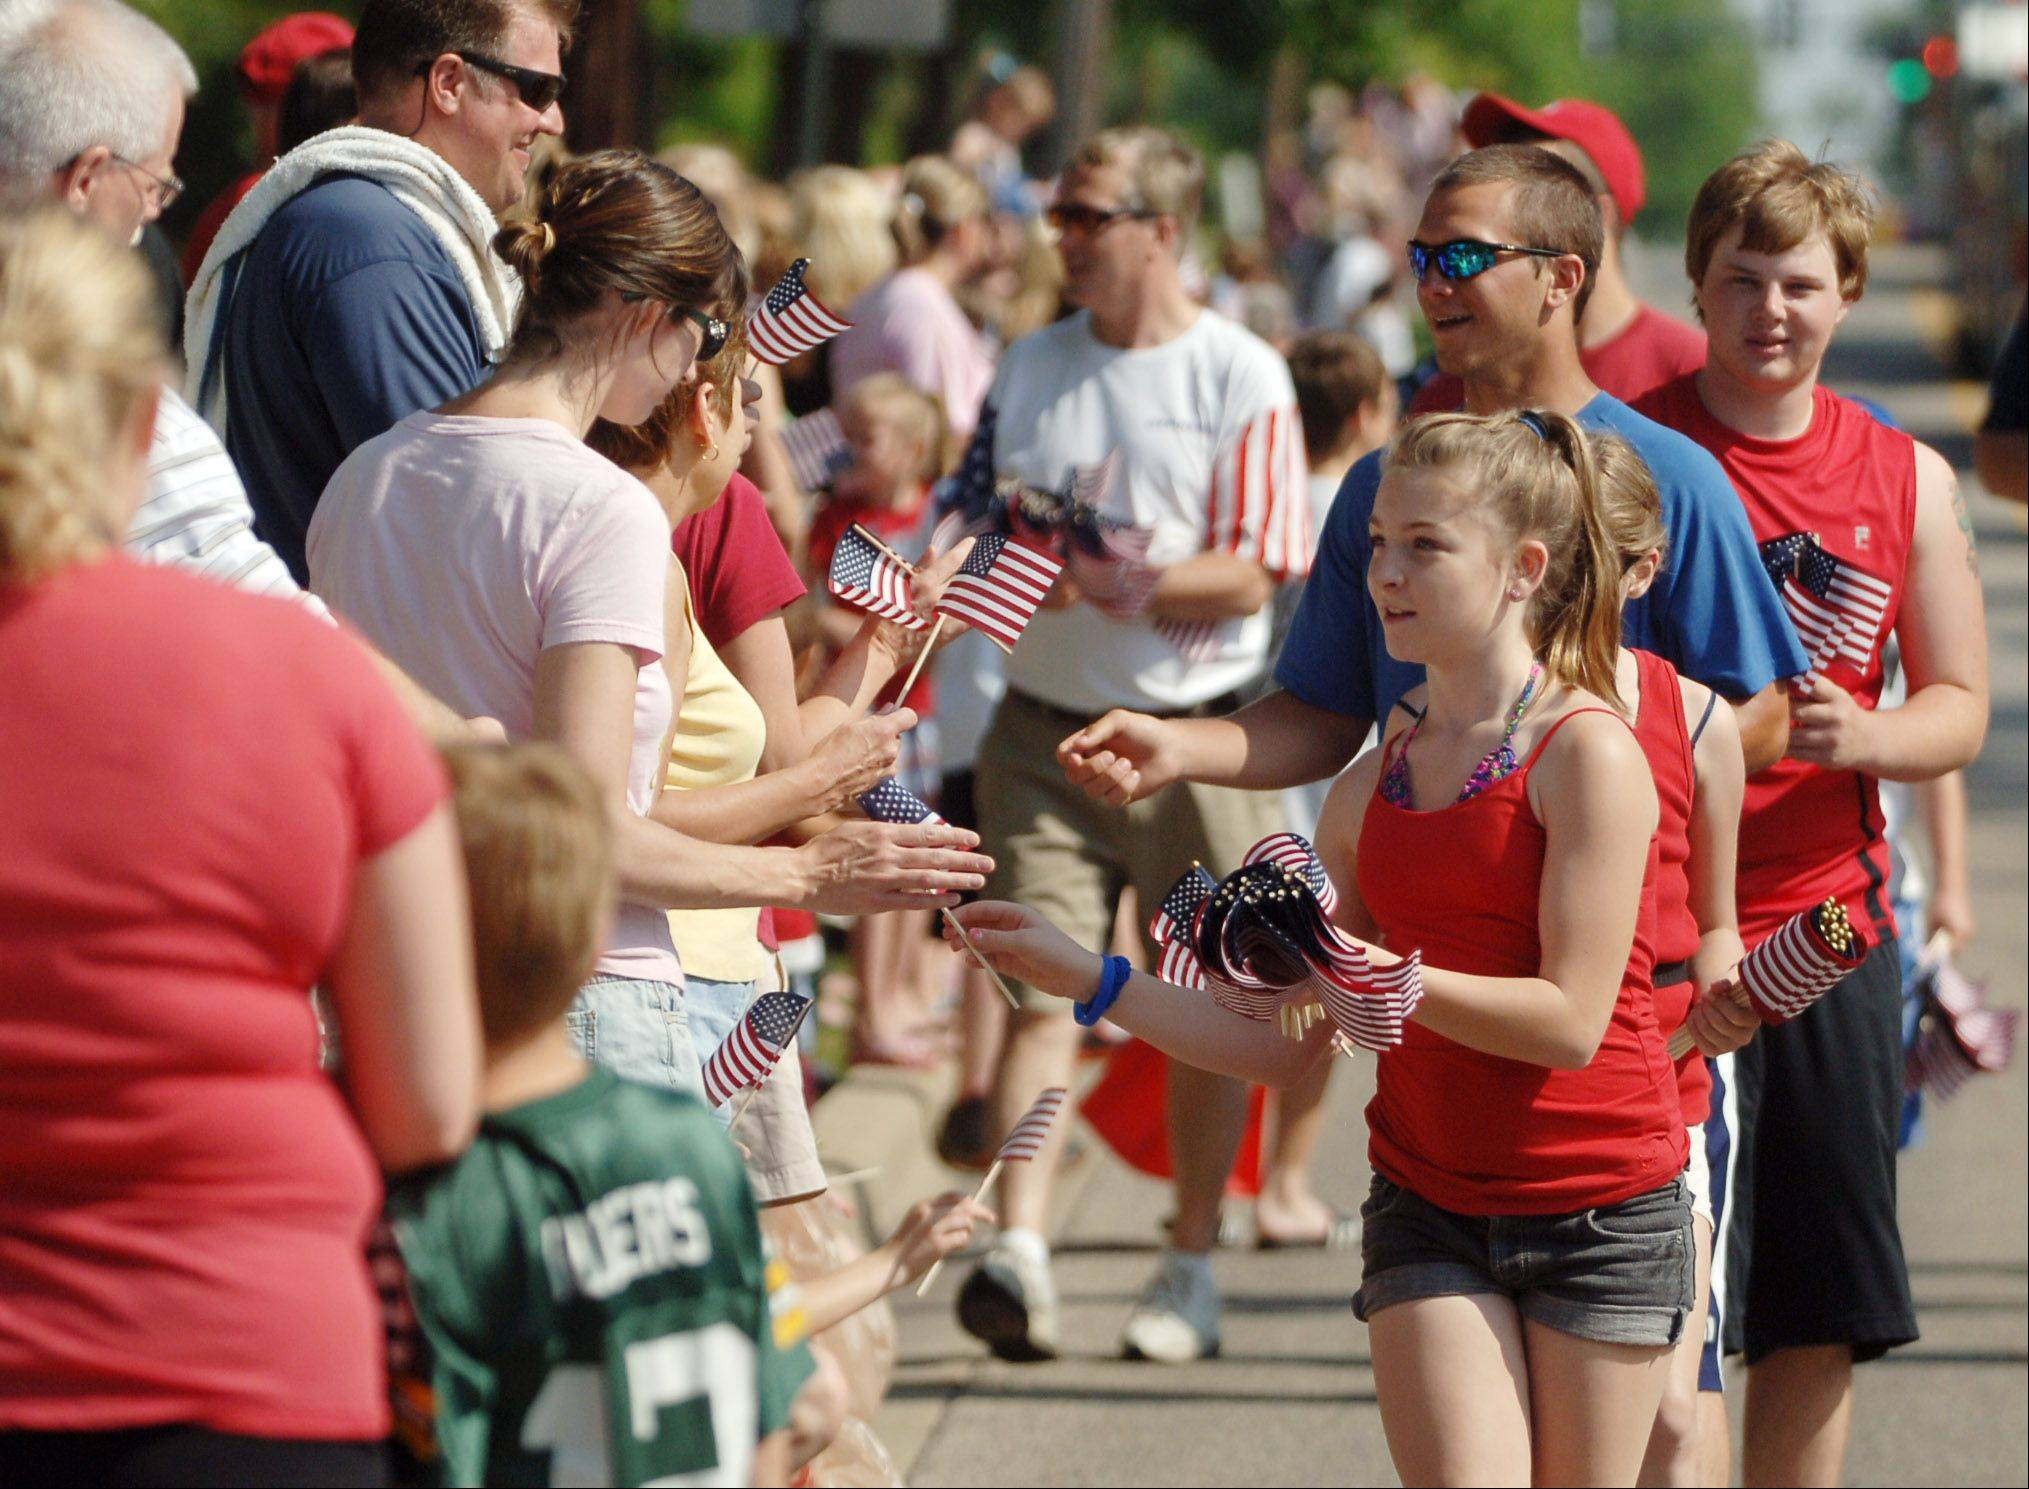 Flags were handed out to spectators at Grayslake's annual Memorial Day parade on Monday.